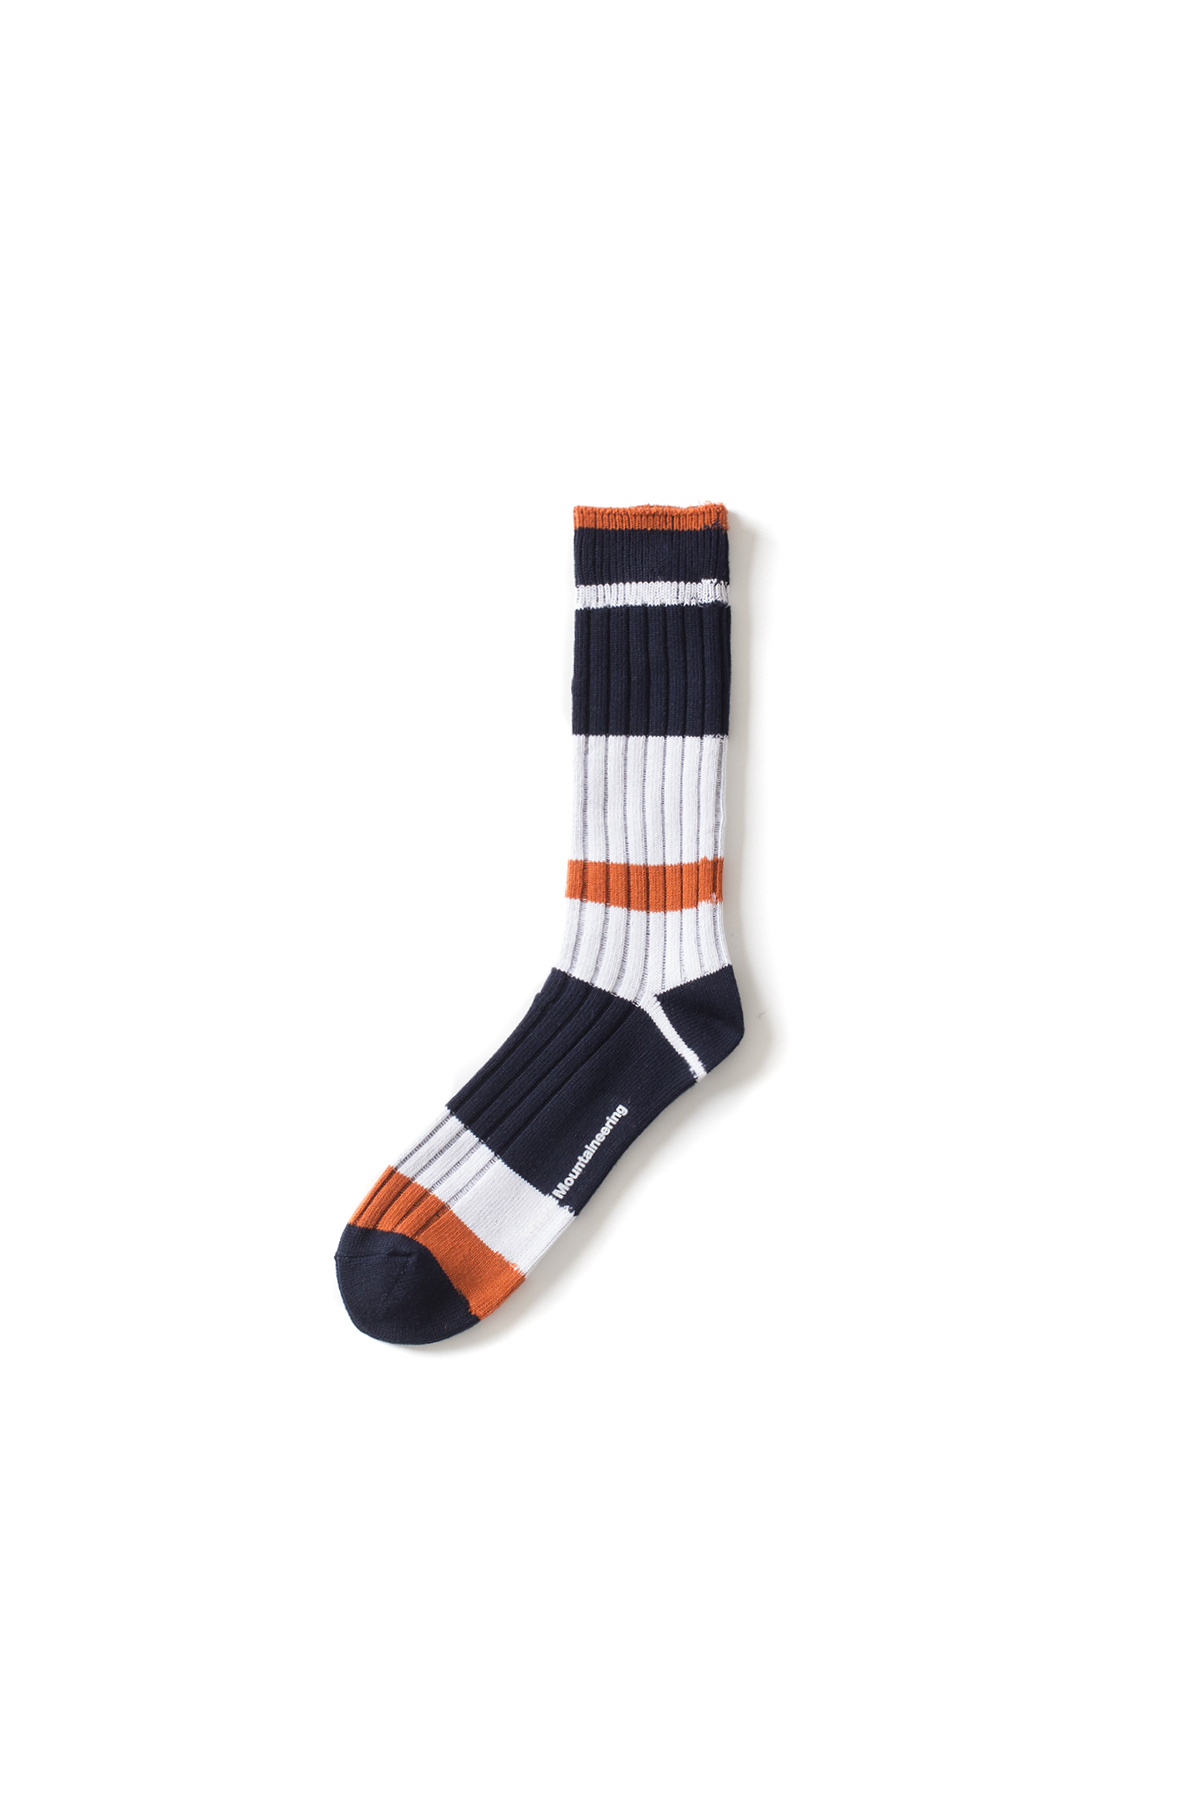 WHITE MOUNTAINEERING : Multi Border Middle Socks (Navy / Orange)